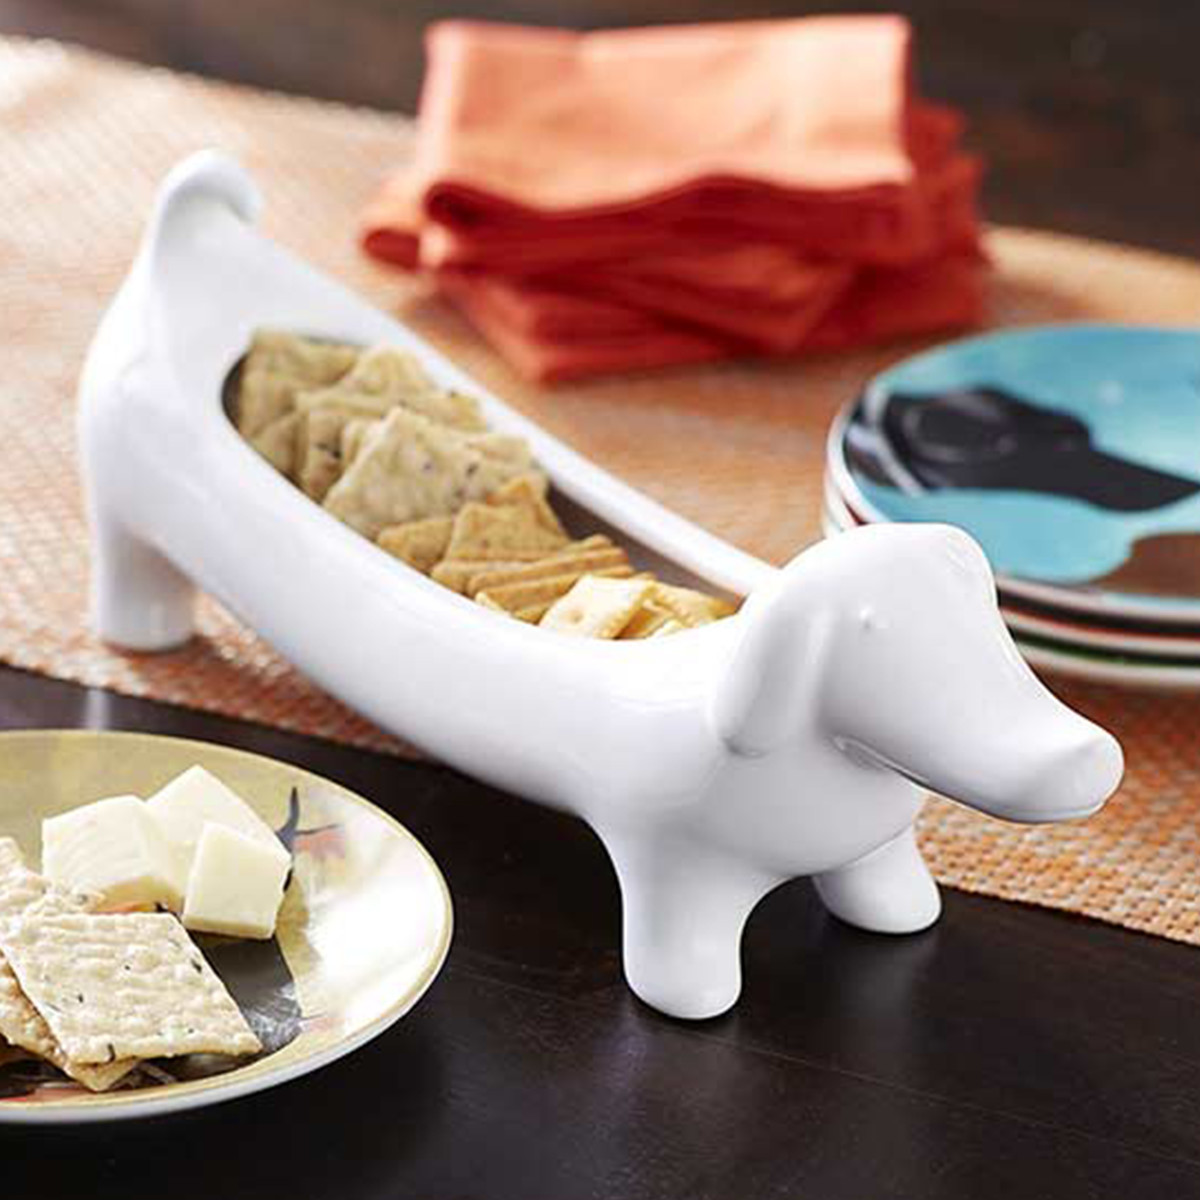 Pier 1 dachshund-shaped dish photo